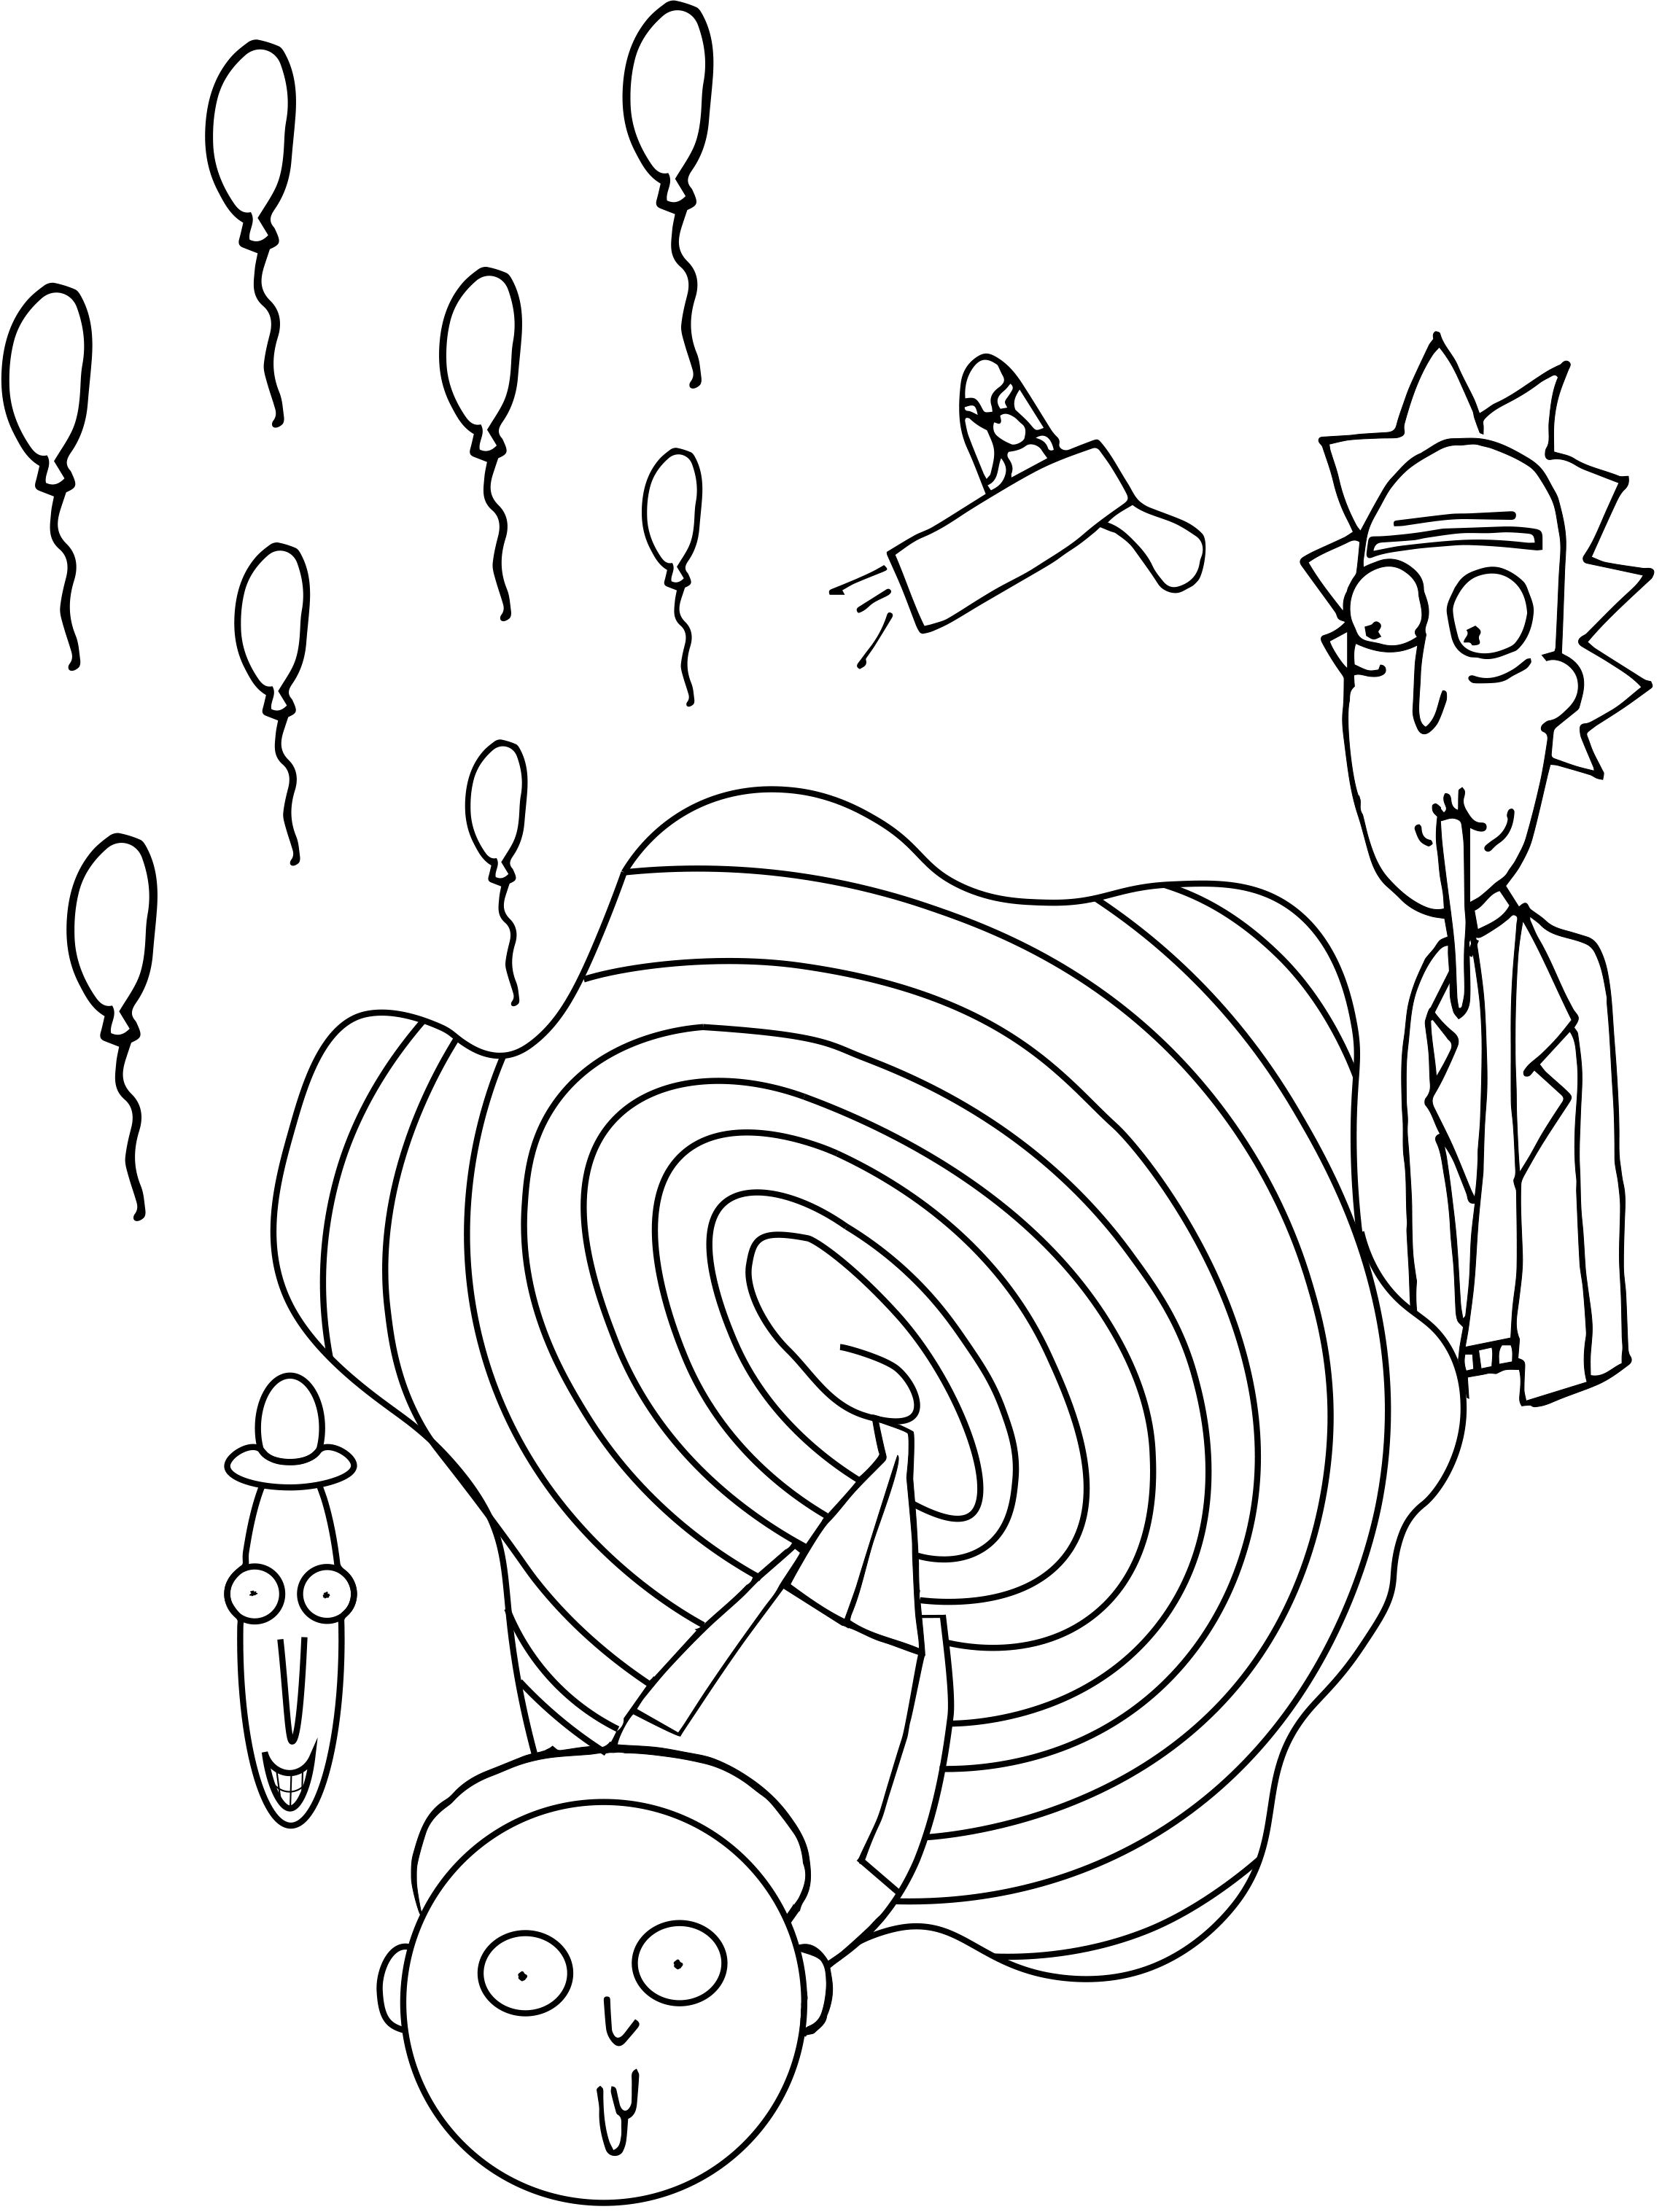 Coloring Page Inspired By Rick And Morty